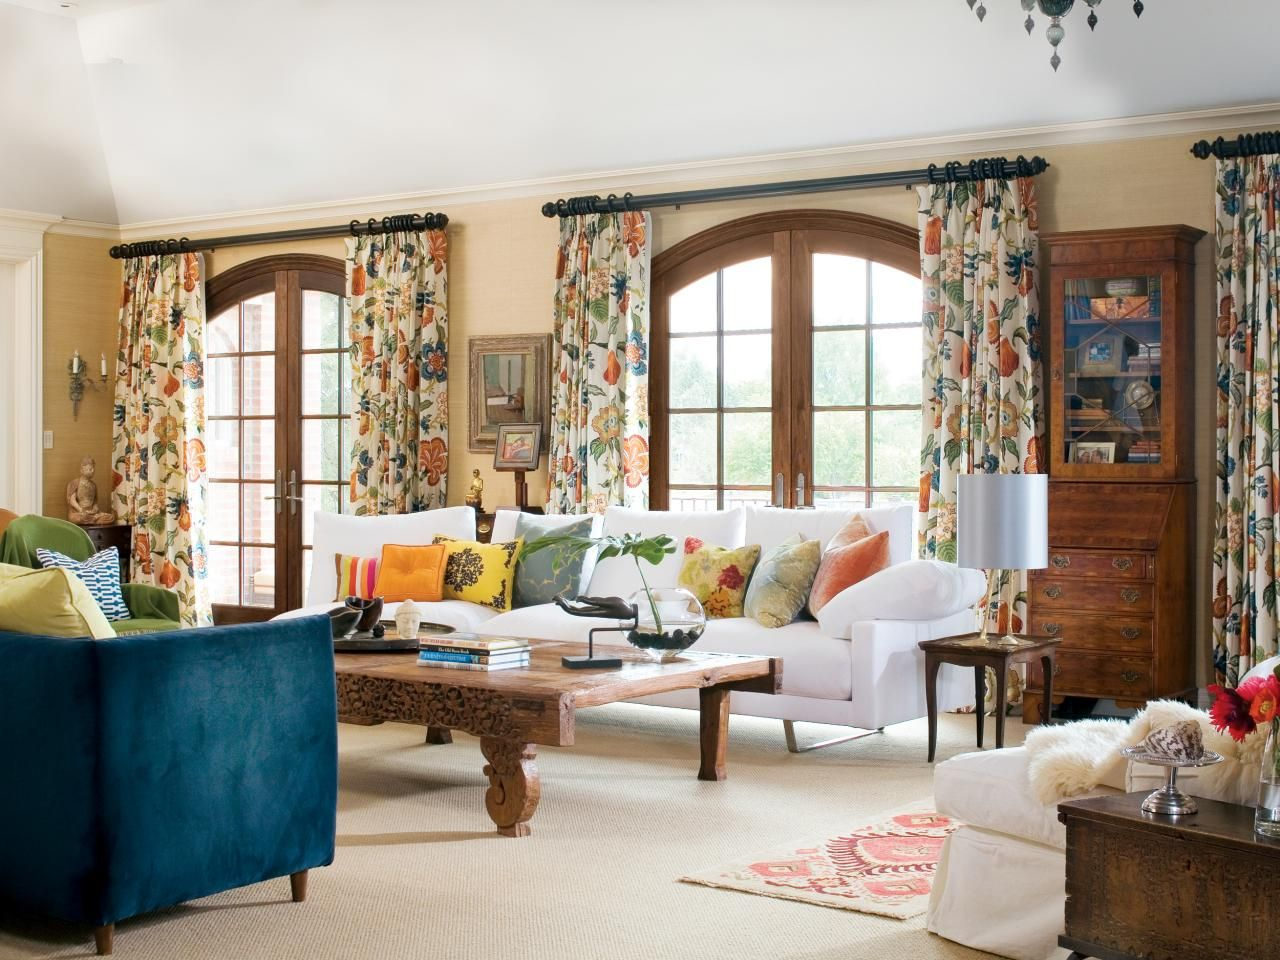 These patterned floral drapes pull accents from all over the living room and compliment the french